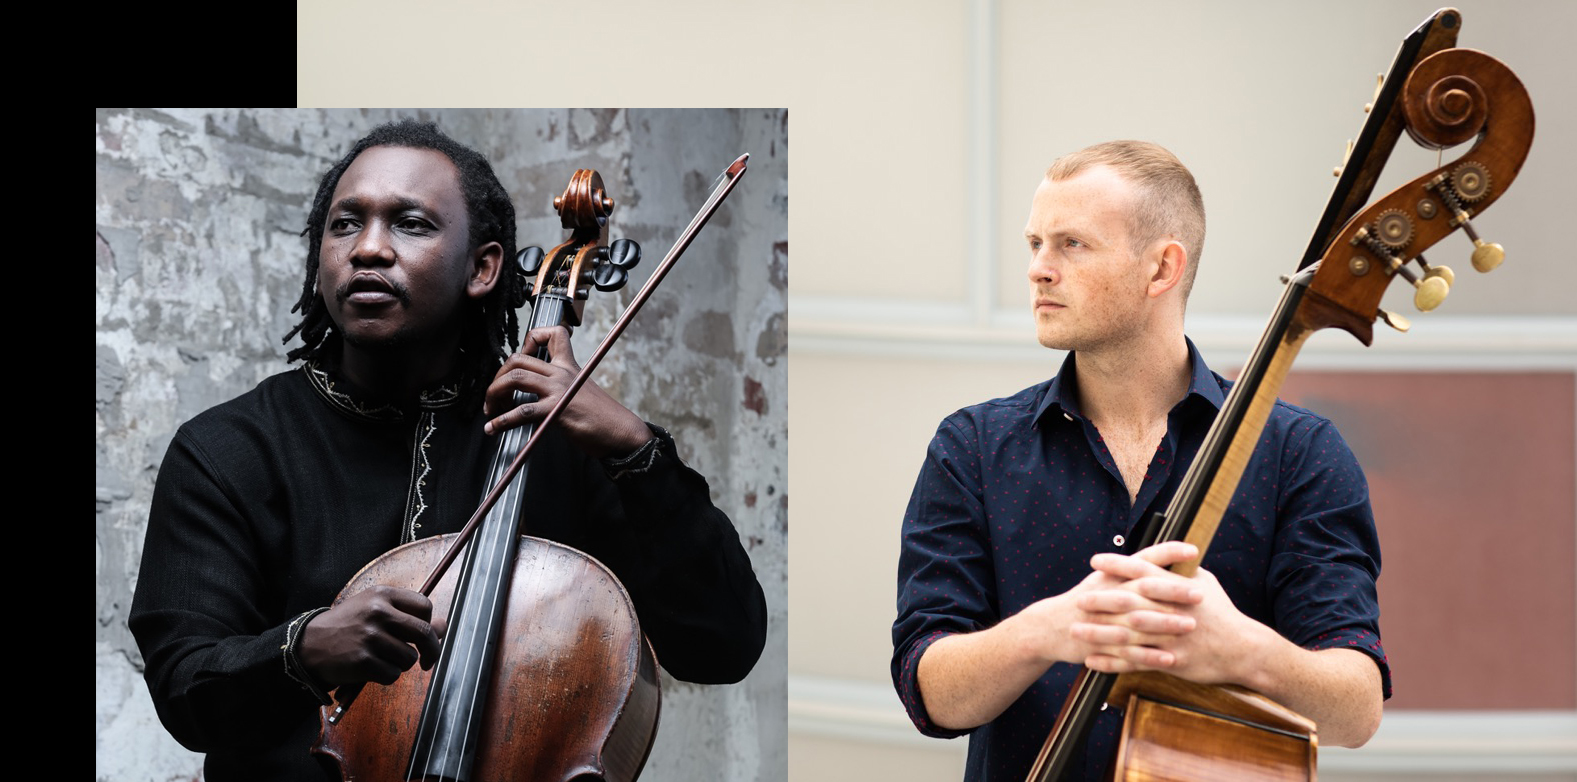 TOBY HUGHES & ABEL SELAOCOE BASS & CELLO (Sunday 8th March, 11.30am)